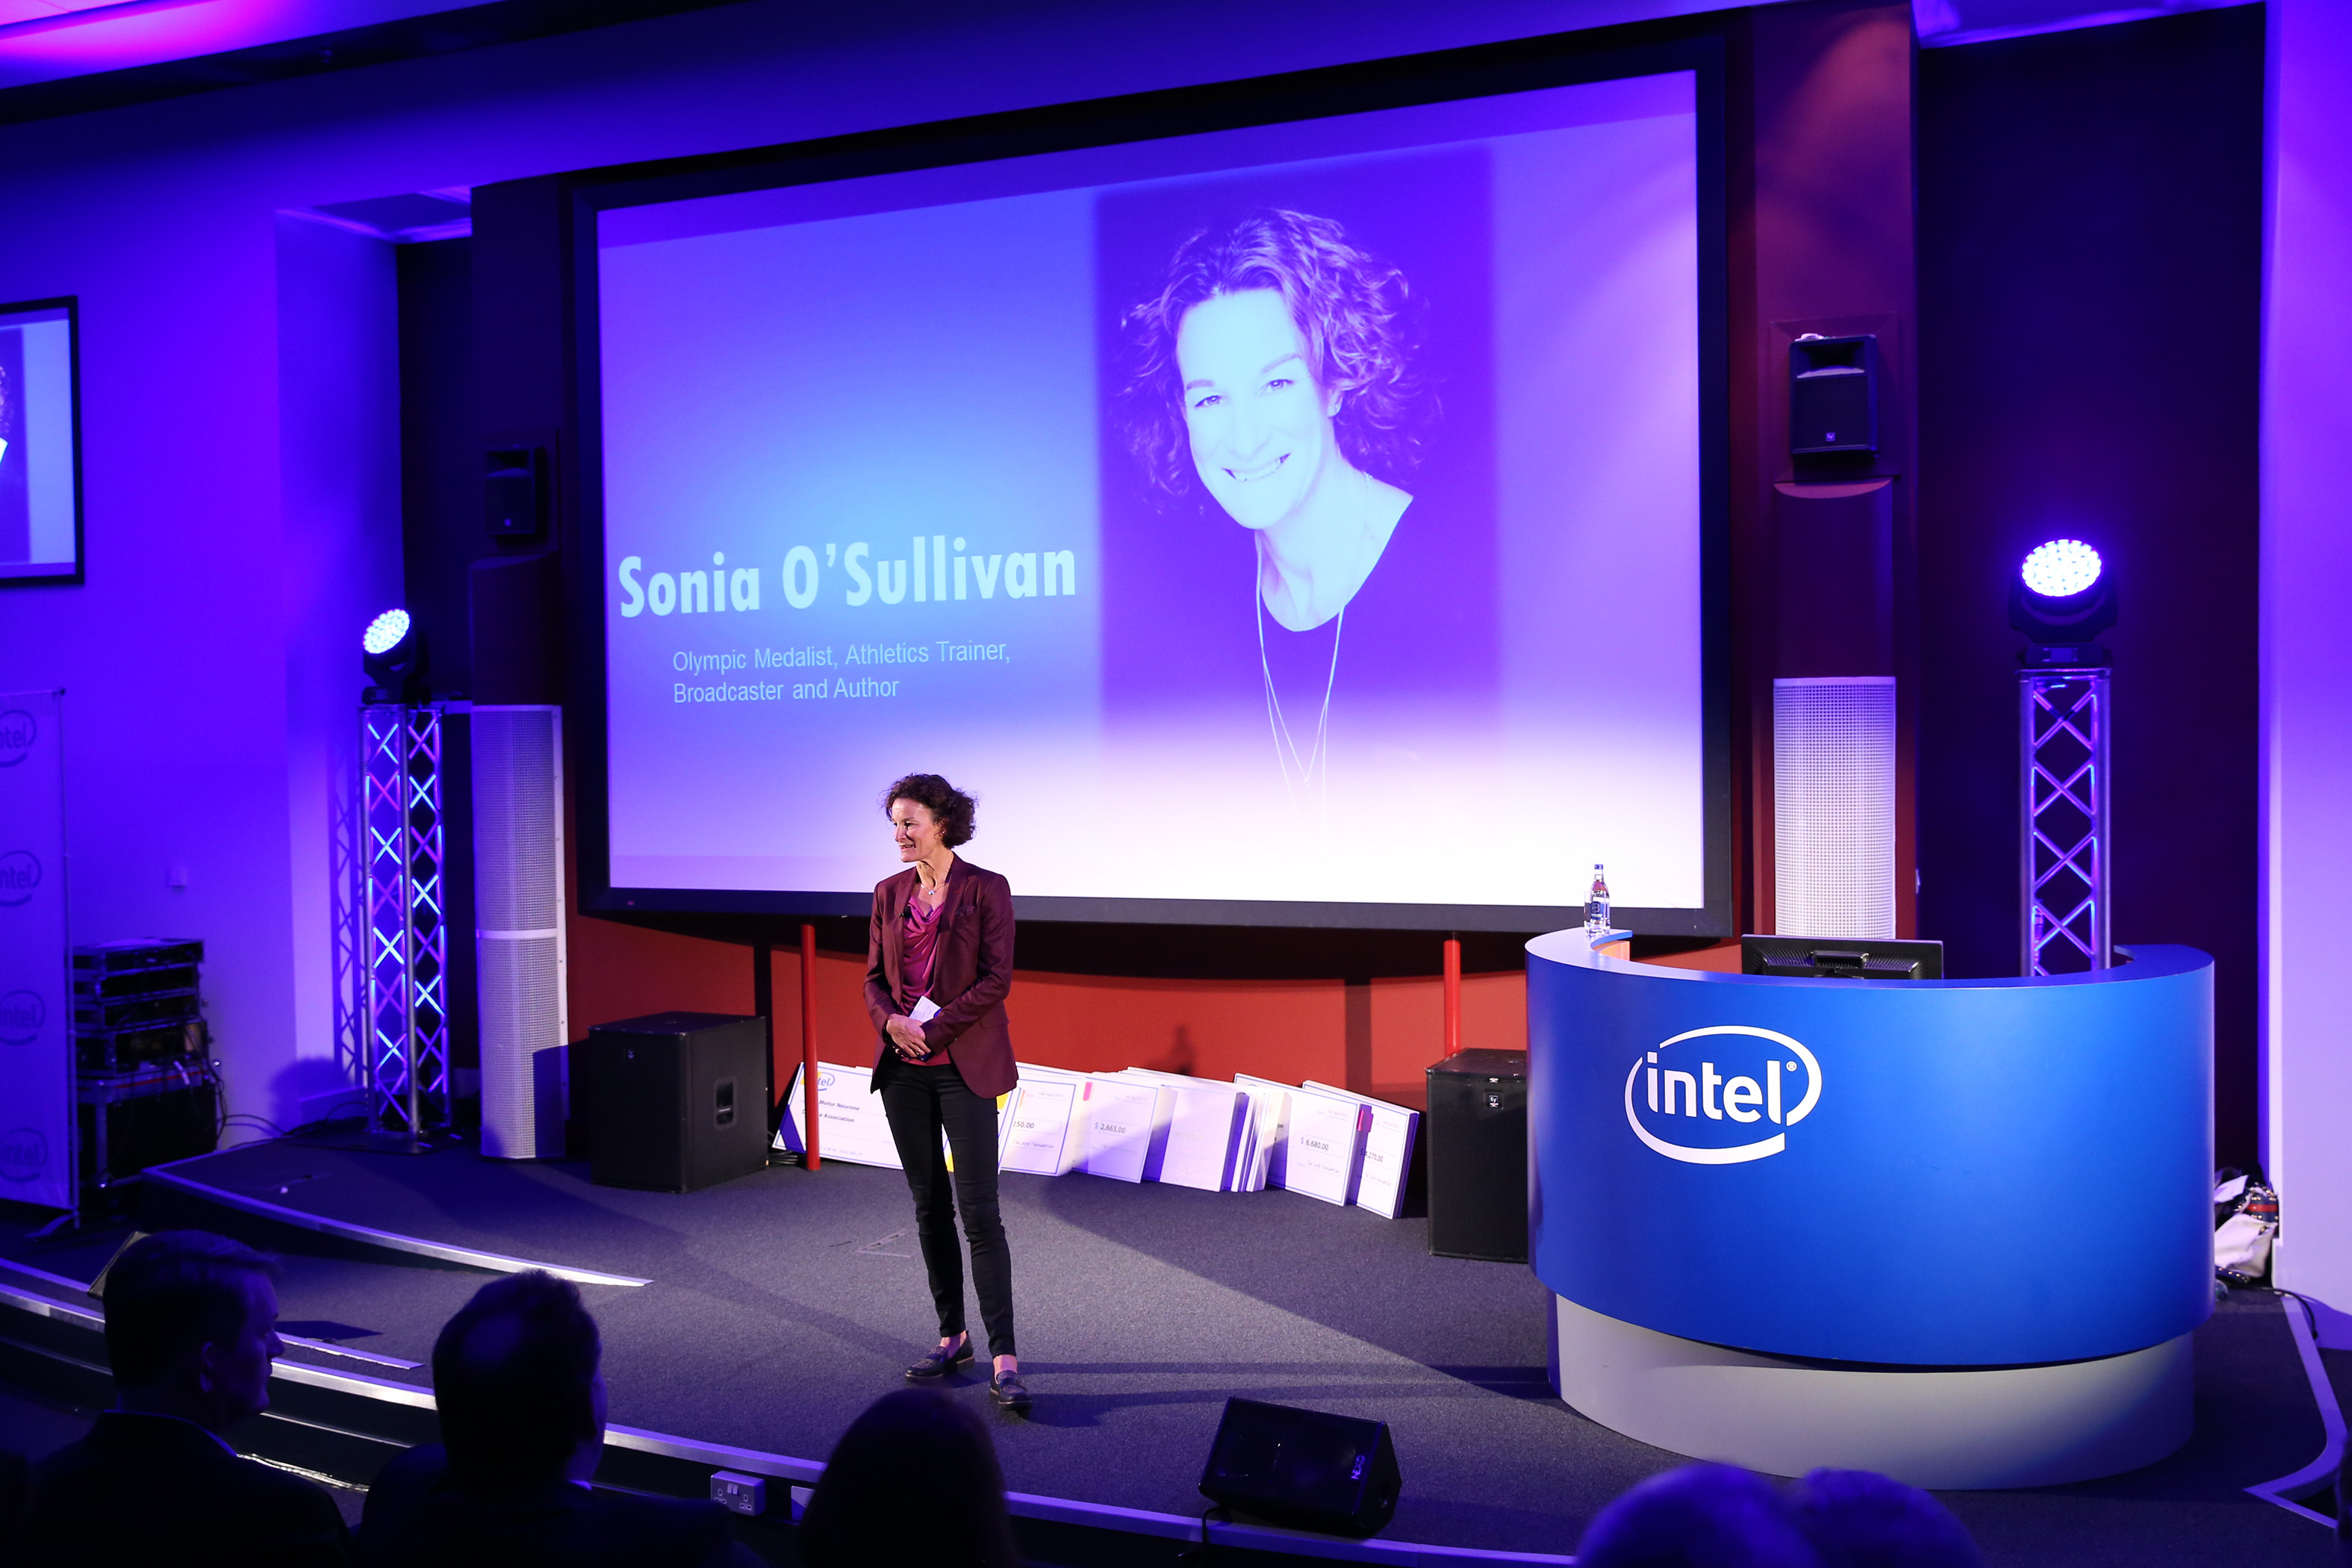 Sonia O'Sullivan addresses the audience at the Intel Matching Grant ceremony